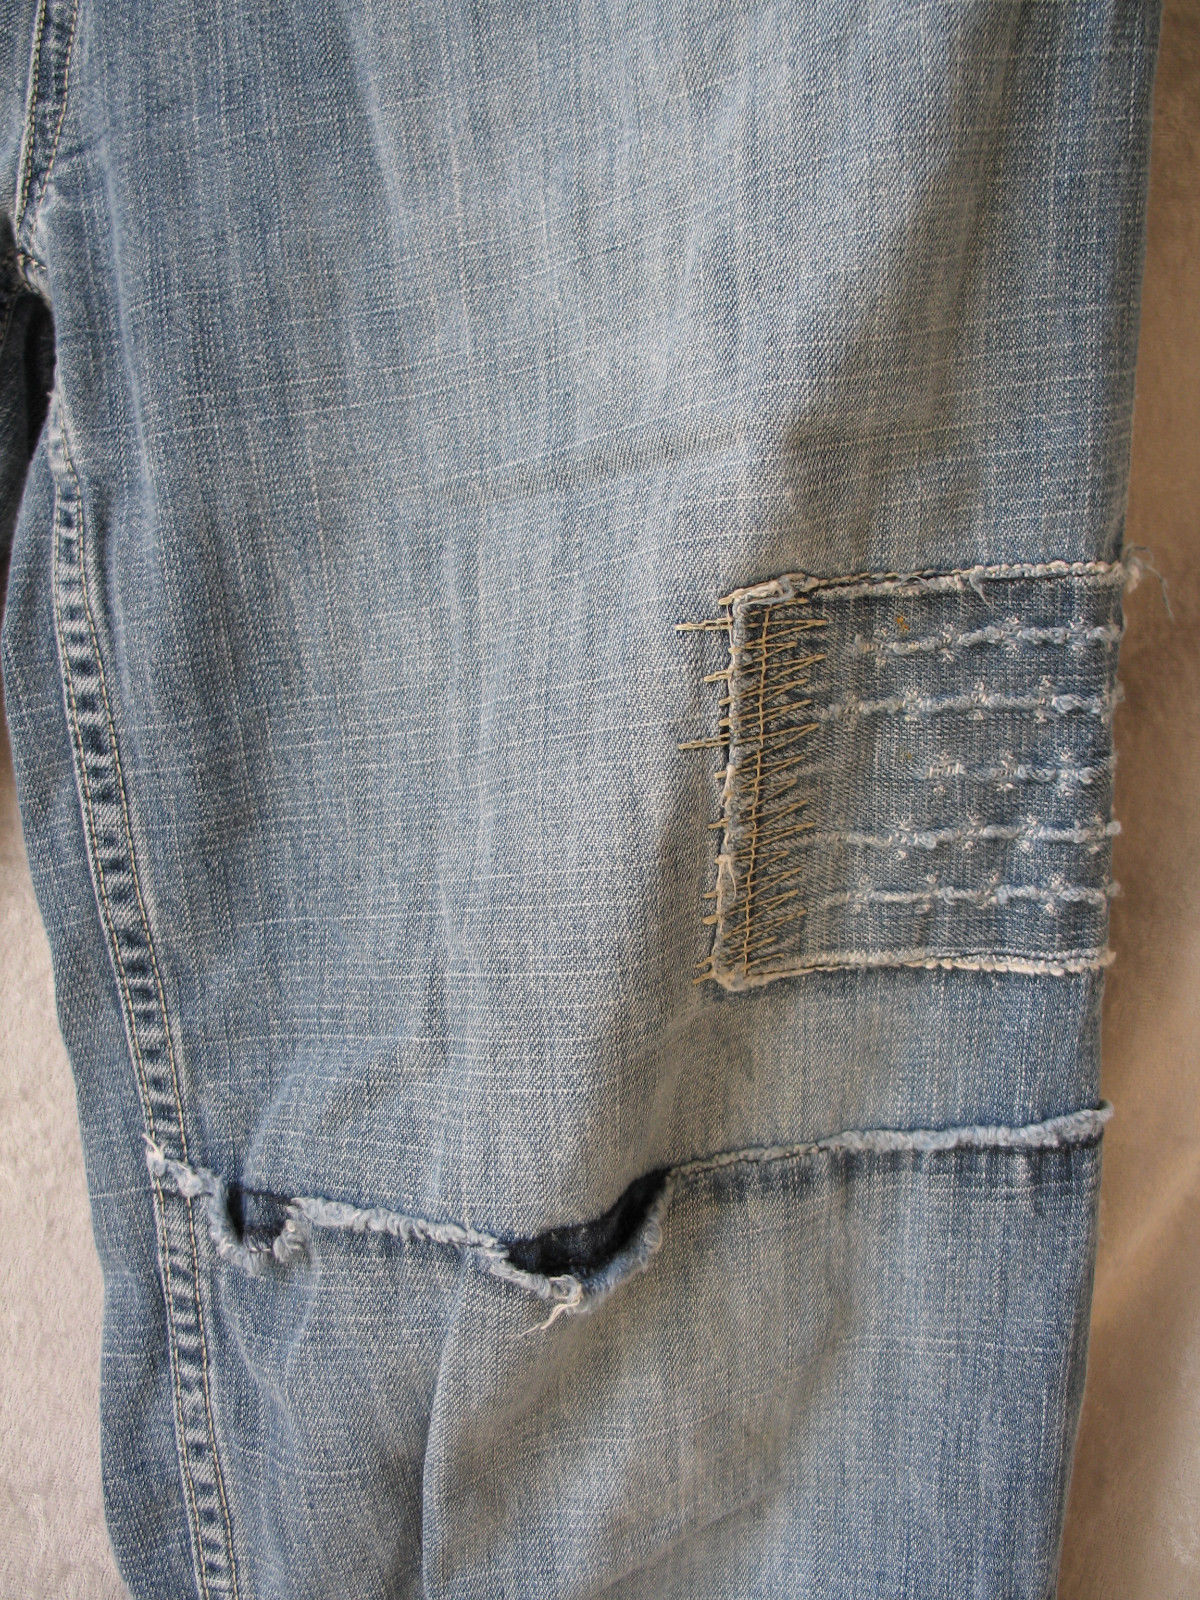 Pepe Jeans UK 32 x 25.5 size 18 (APPROX. USA SIZE 6 LADIES) ARTISTIC STITCHES